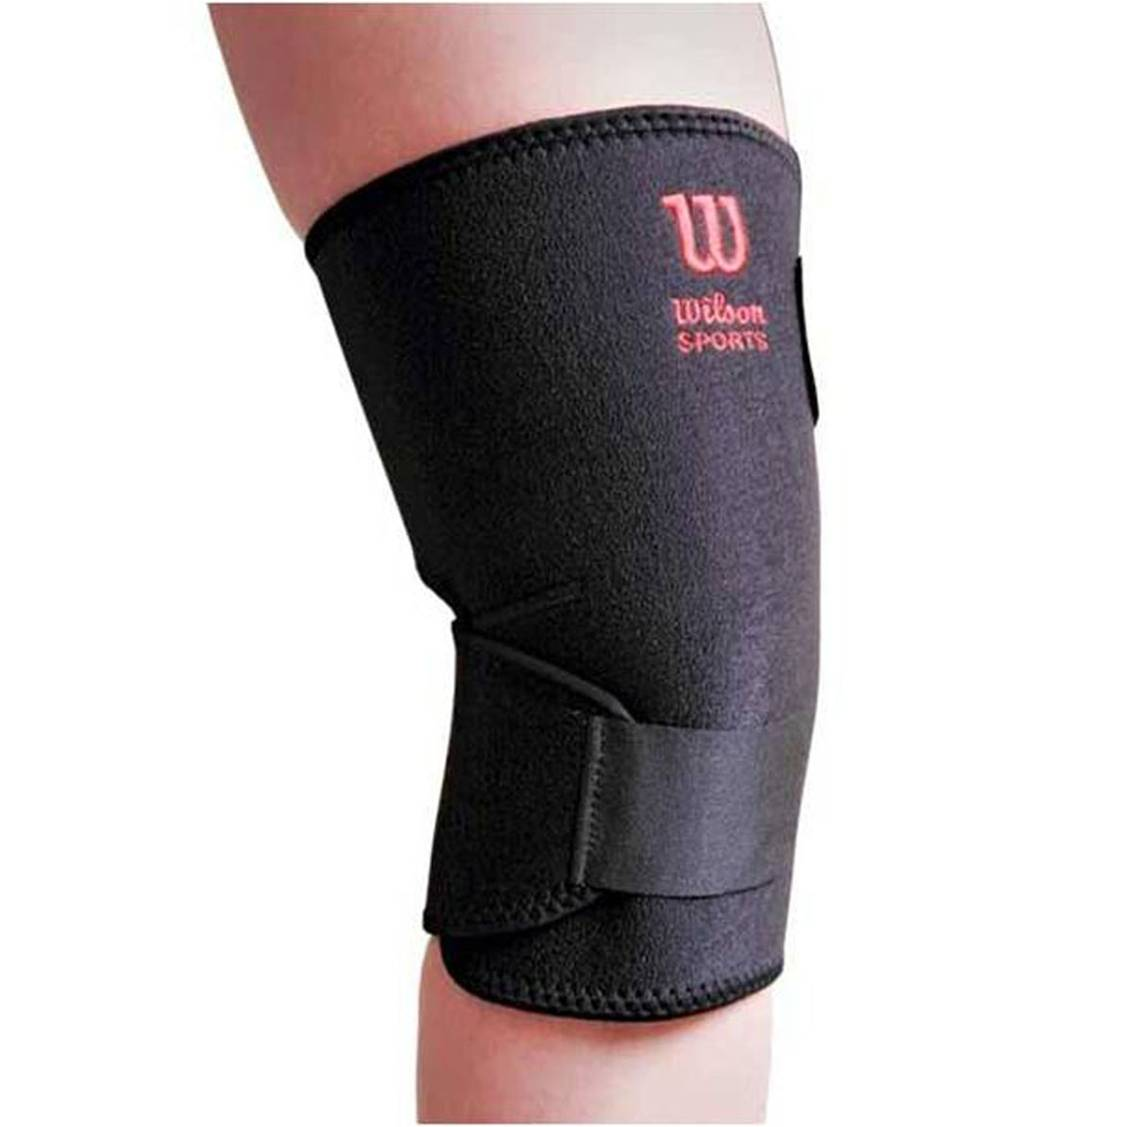 0025824 – AW102 Wrap Knee Support